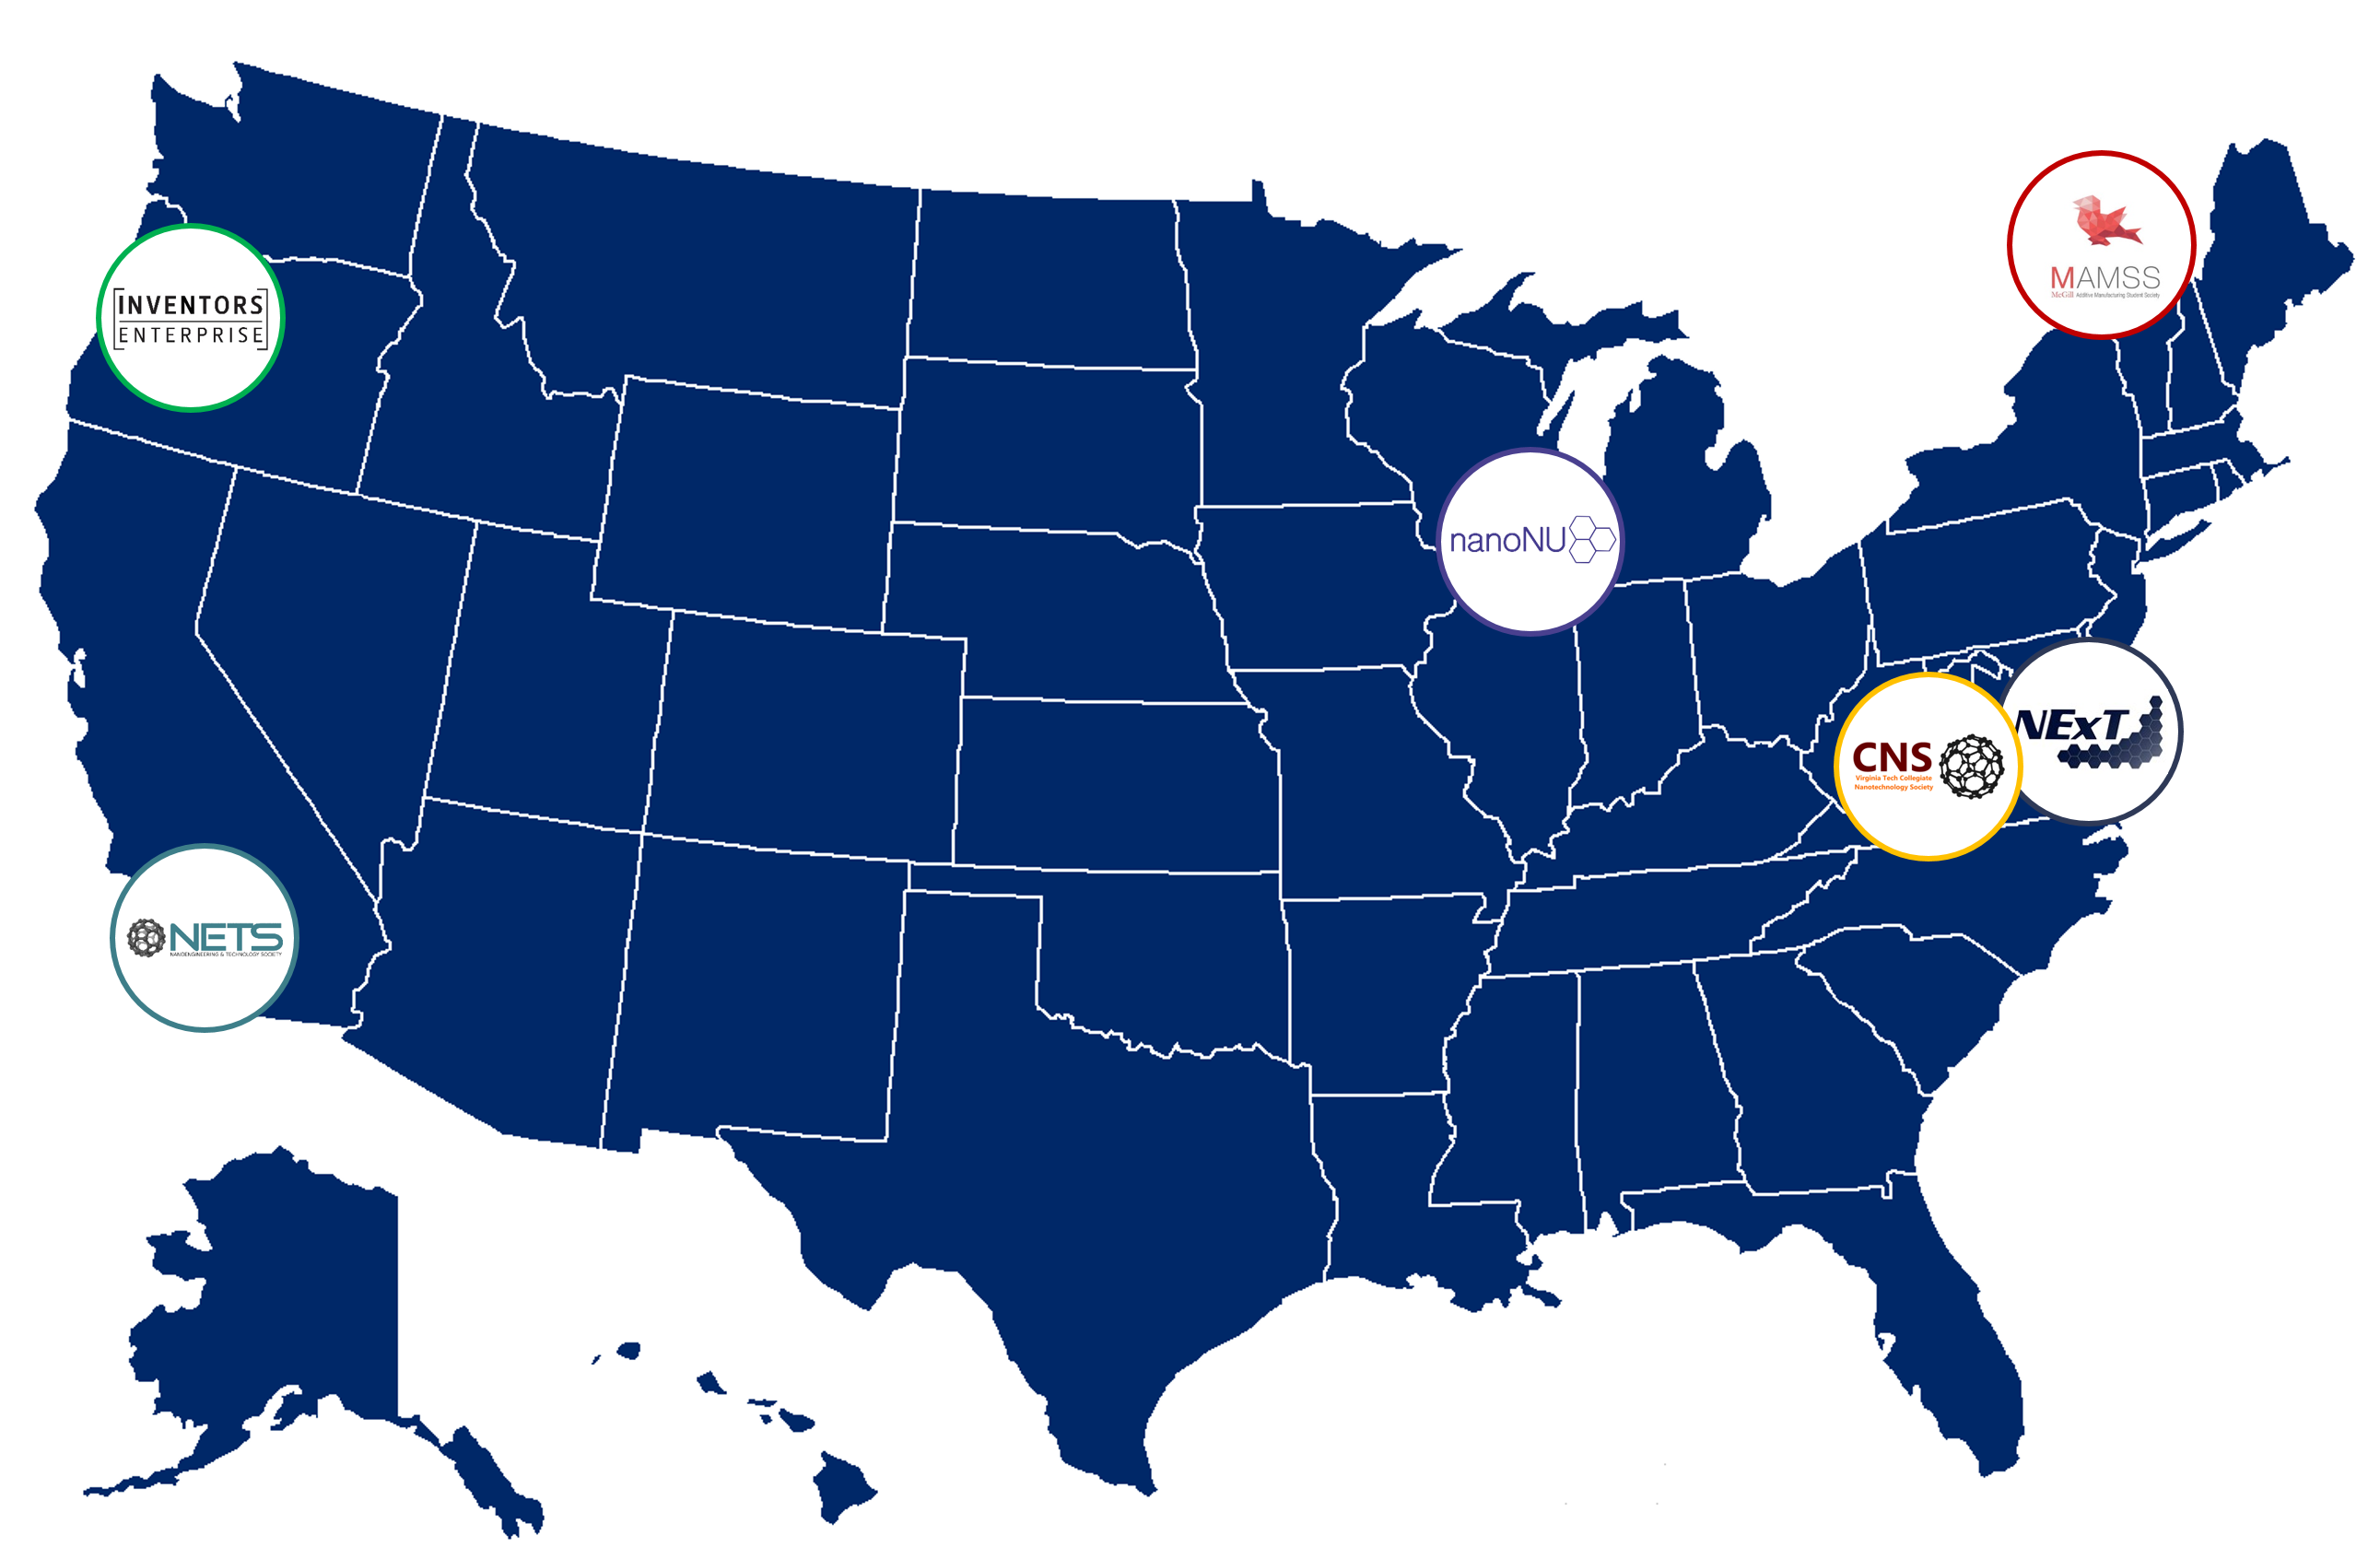 NextTech is made up of groups from around the country! Click on each organization to learn more!